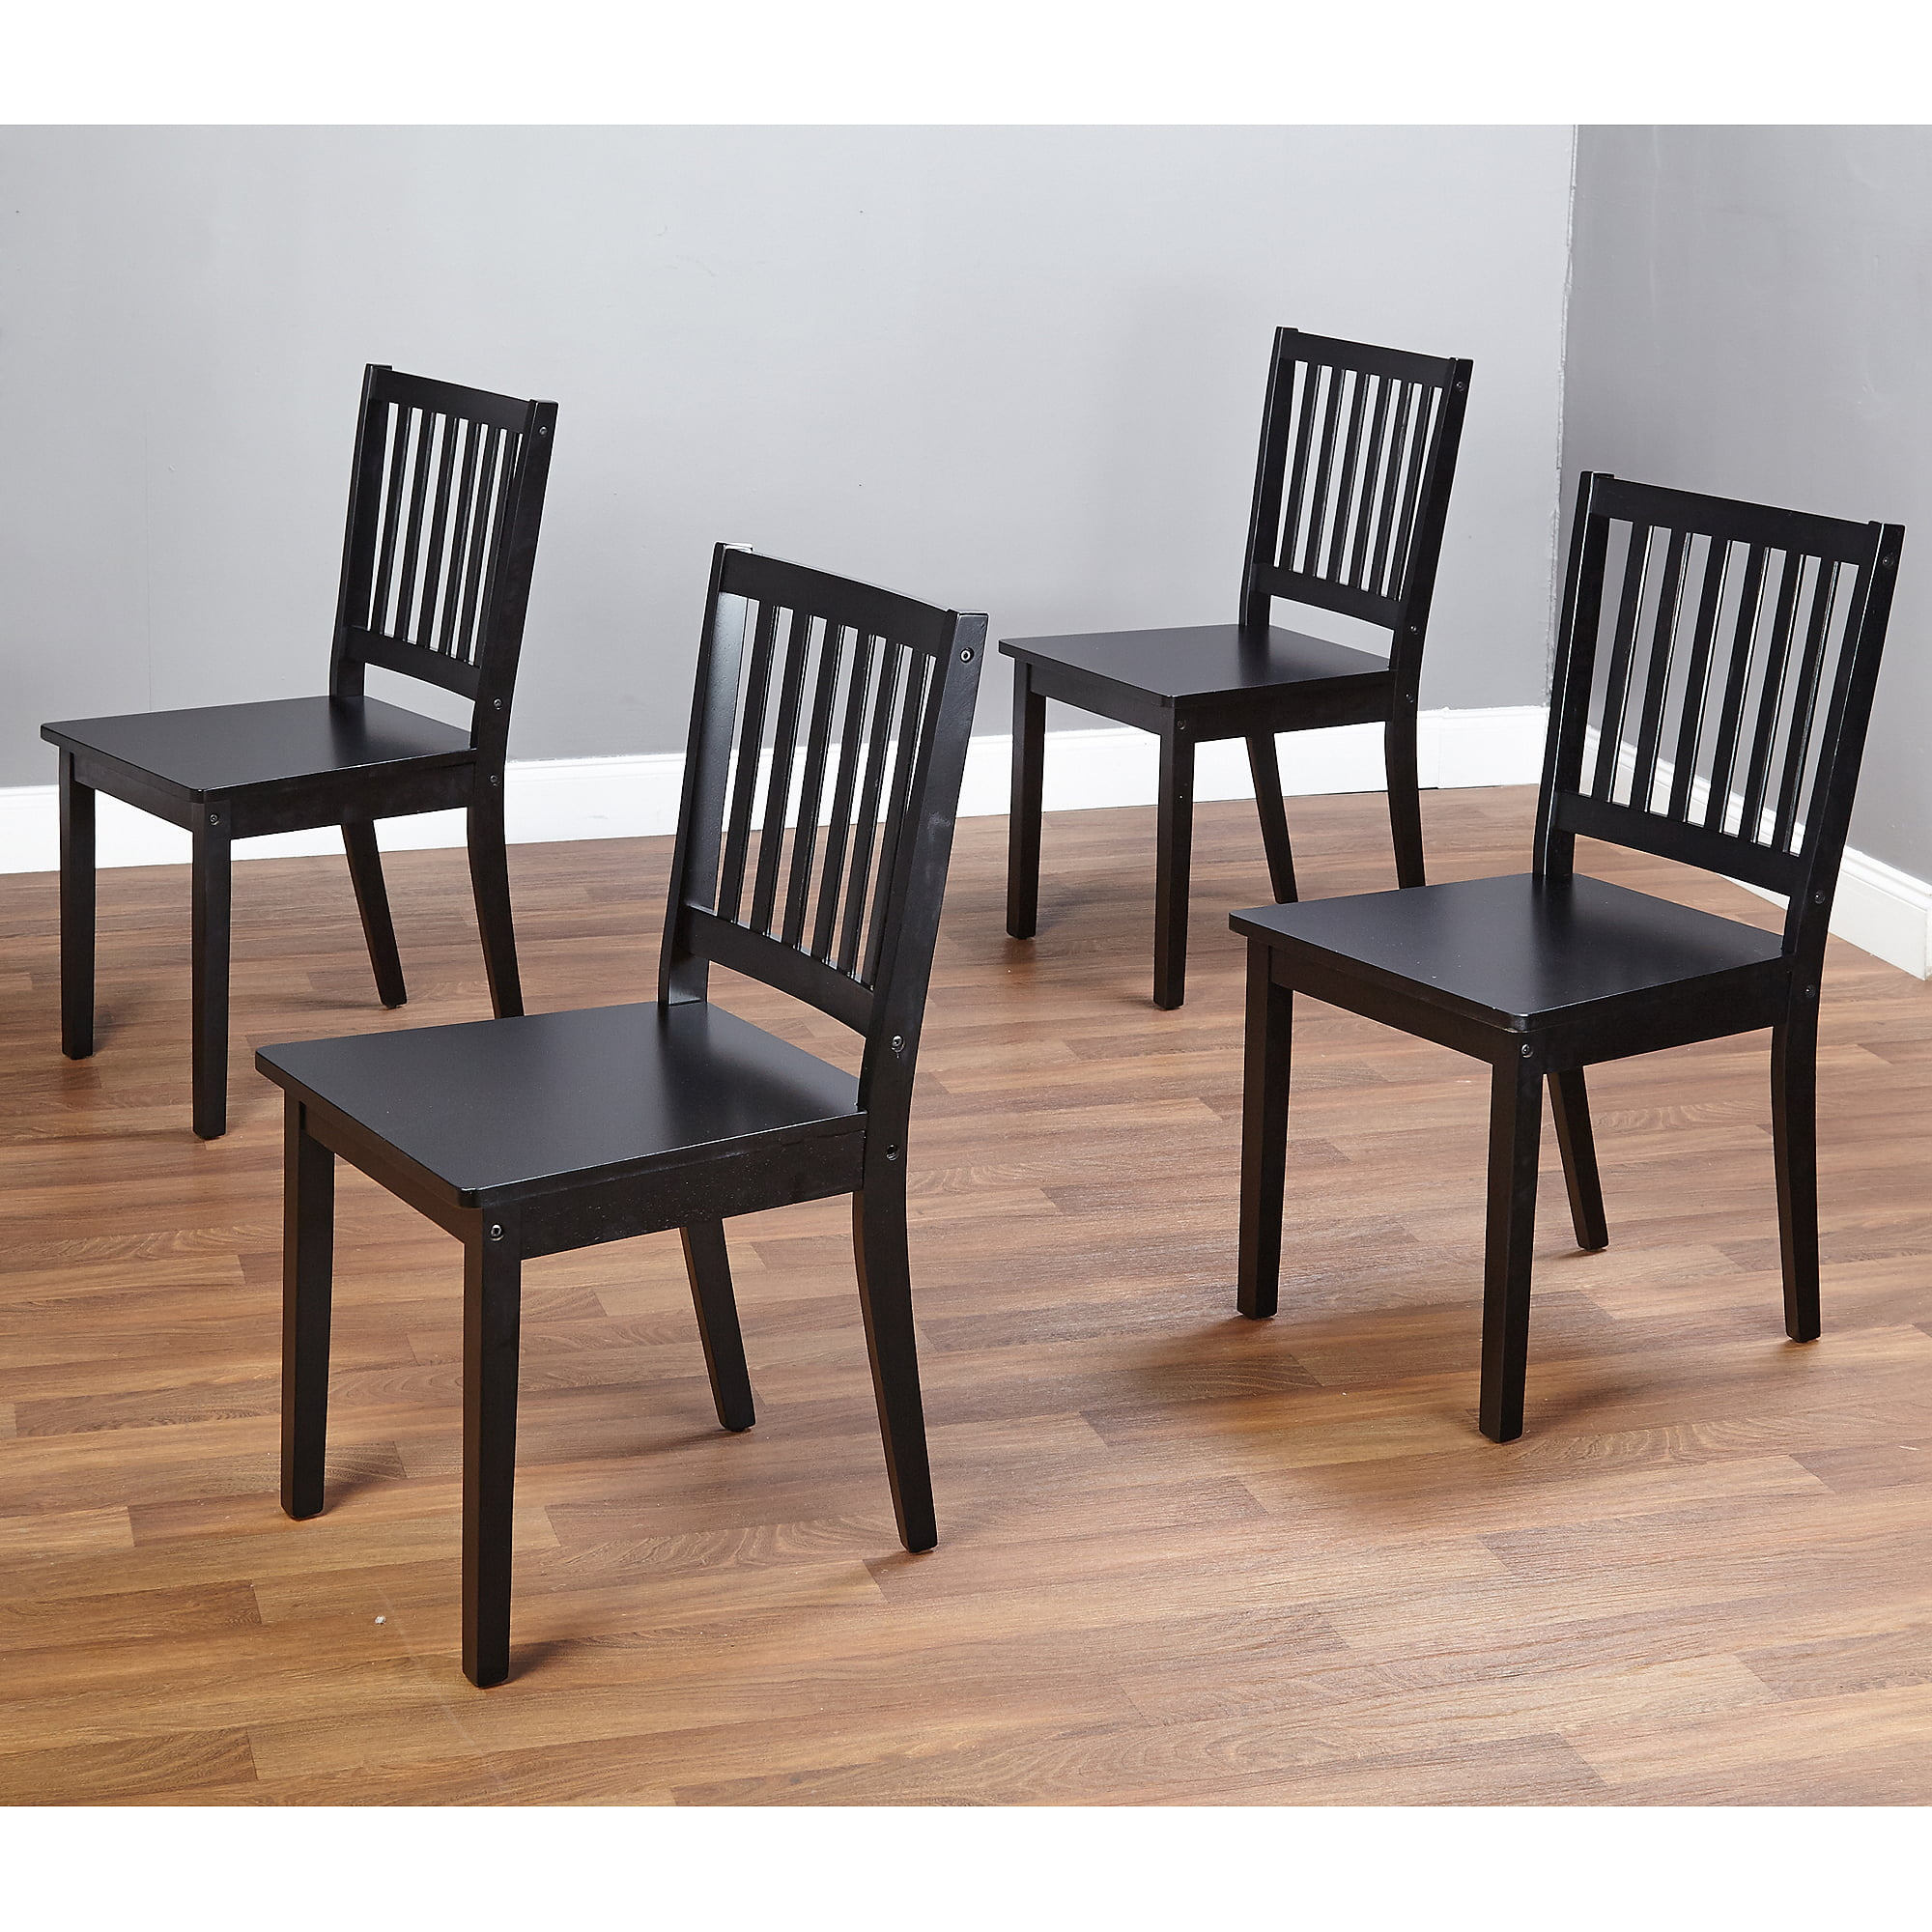 Shaker Dining Chairs, Set of 4, Espresso - Walmart.com